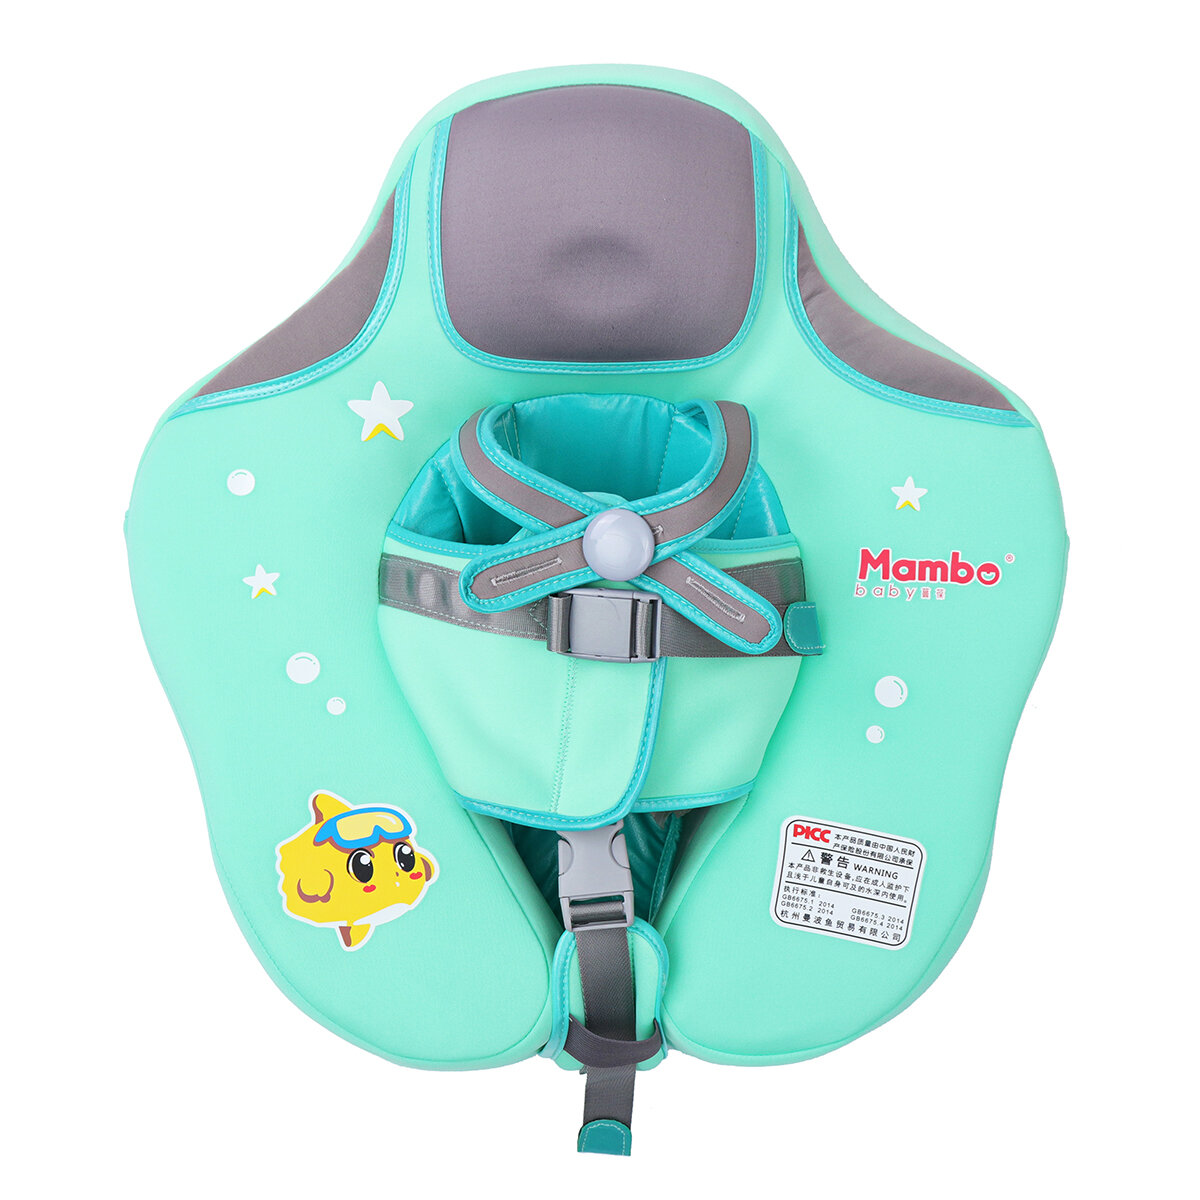 6c8a8bfcf1a Baby Solid Swimming Ring Float Swim Trainer Safety Aid Pool Water Fun Toy  Gifts COD